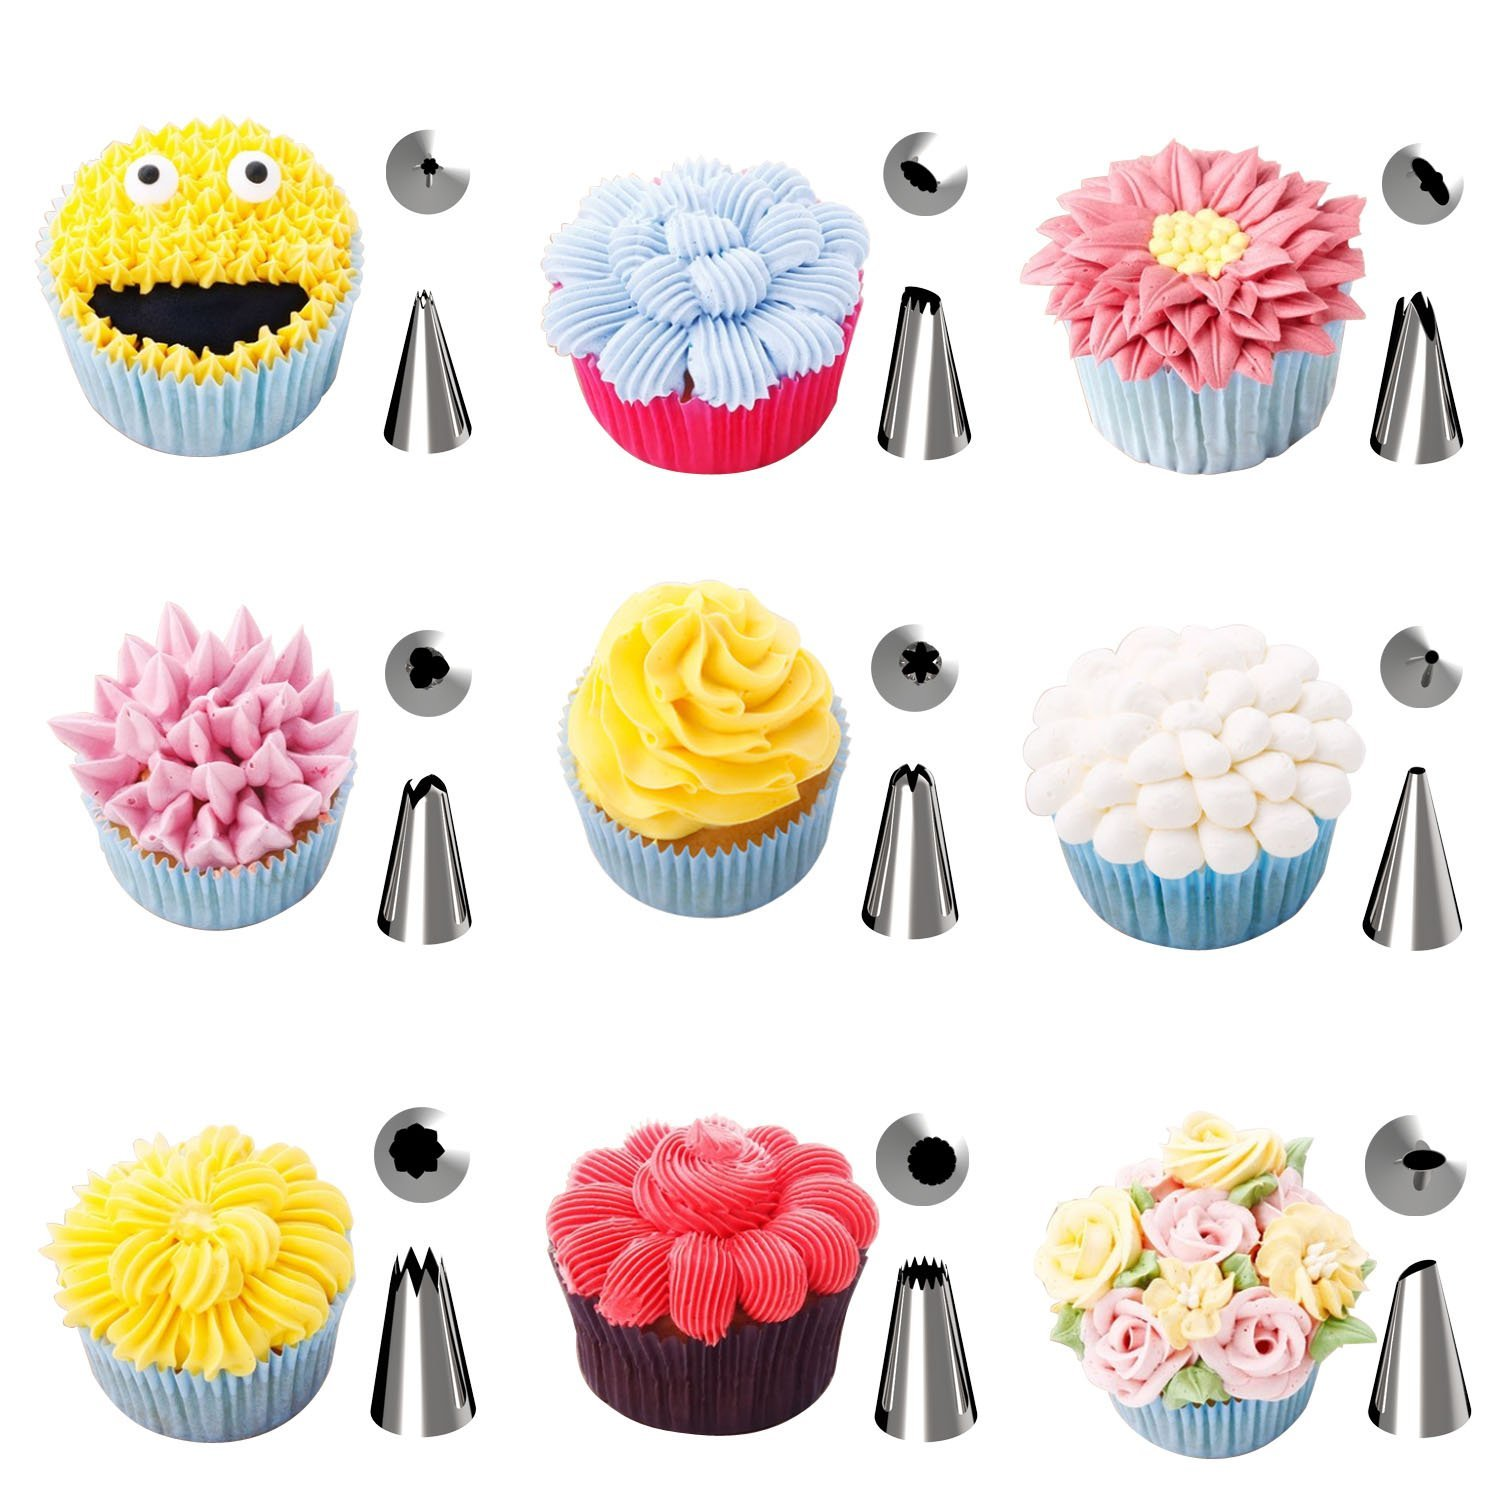 Everyone likes these kinds of cake decorating kit tips ...